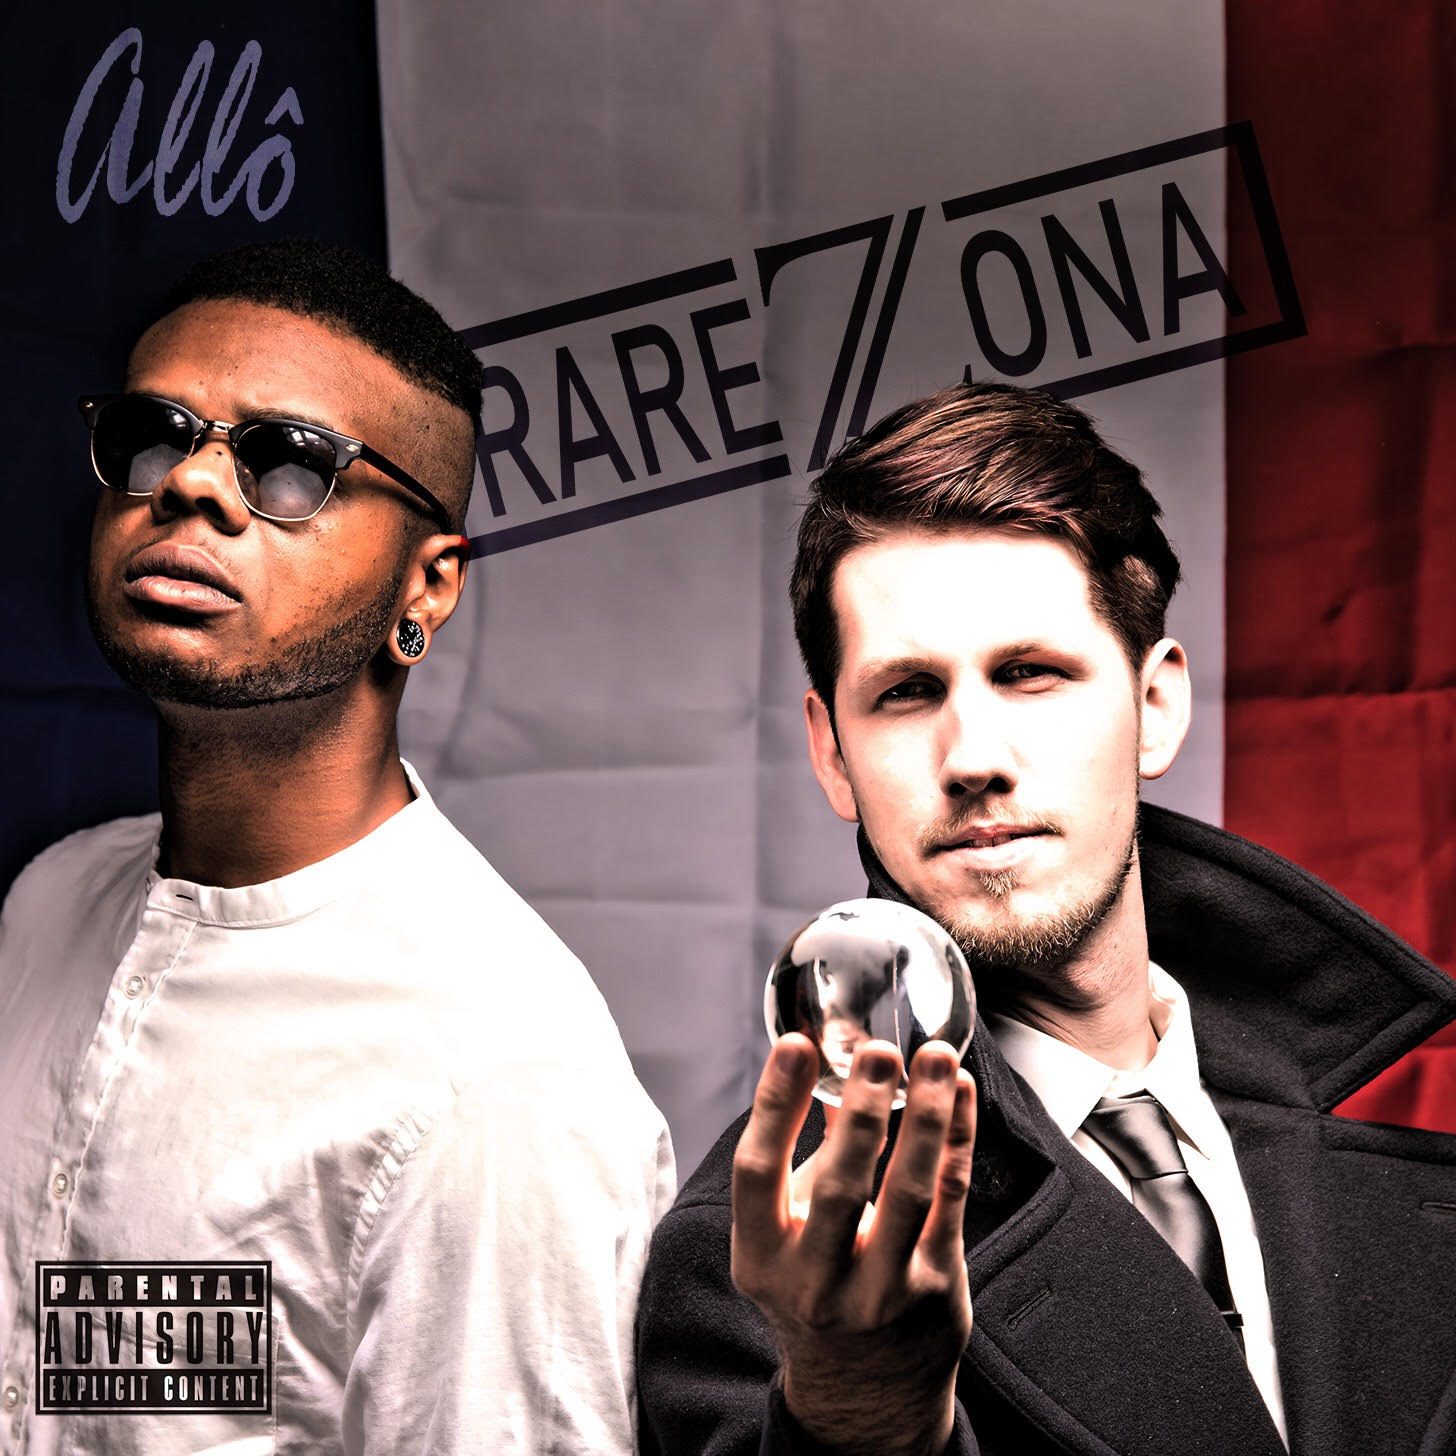 New Music: RareZona – Allo | @RareZona  @MaCrystalBall